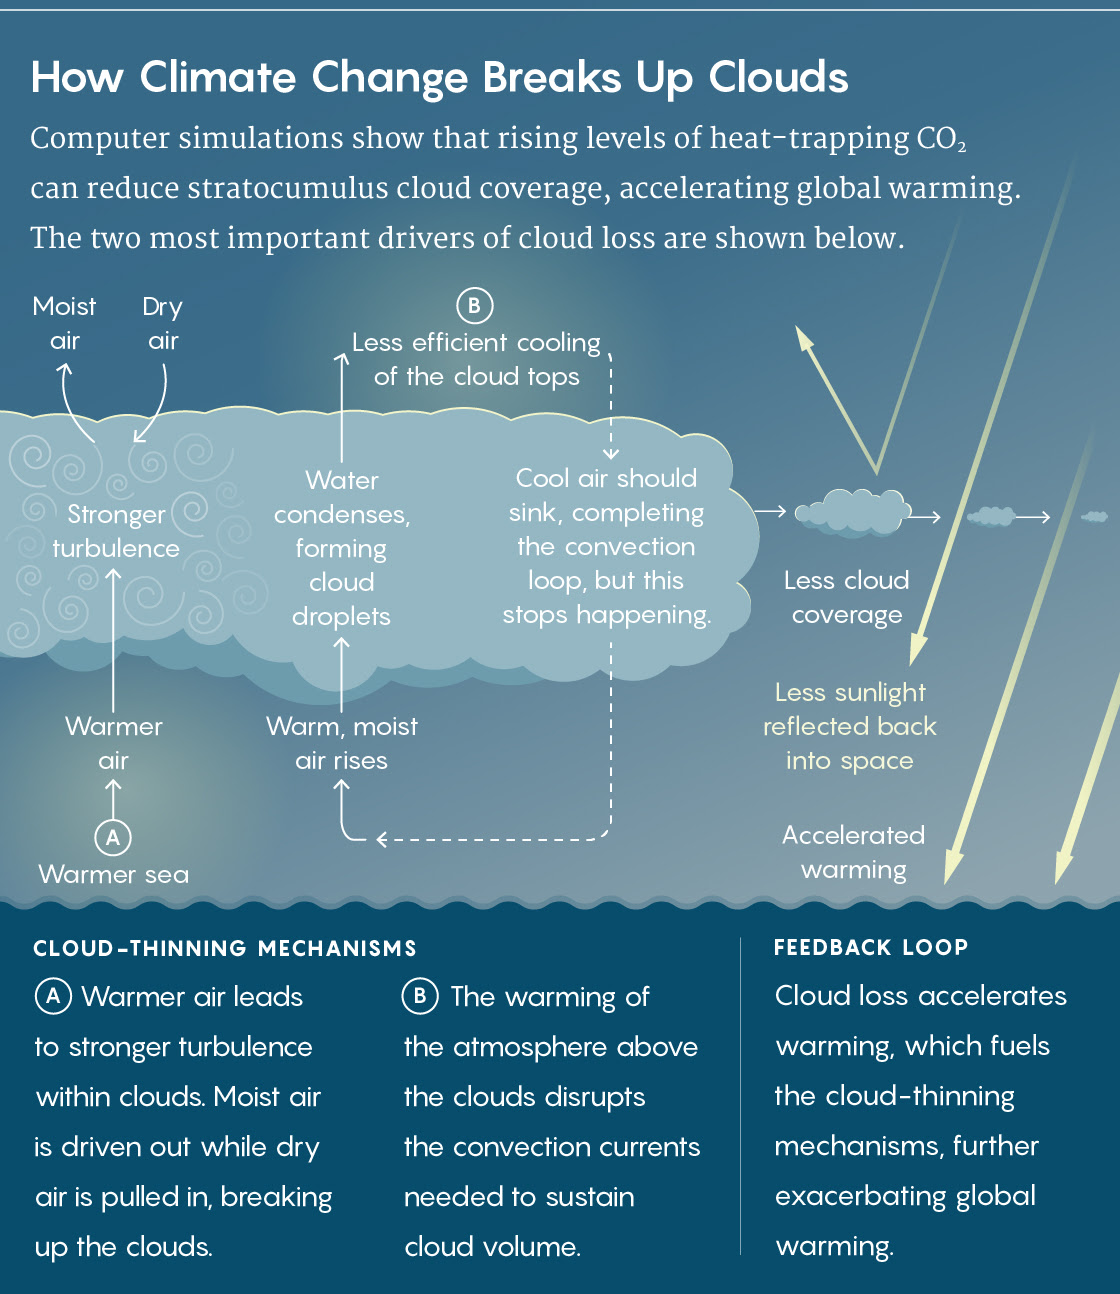 How important are clouds to our climate? | Sustainability Math